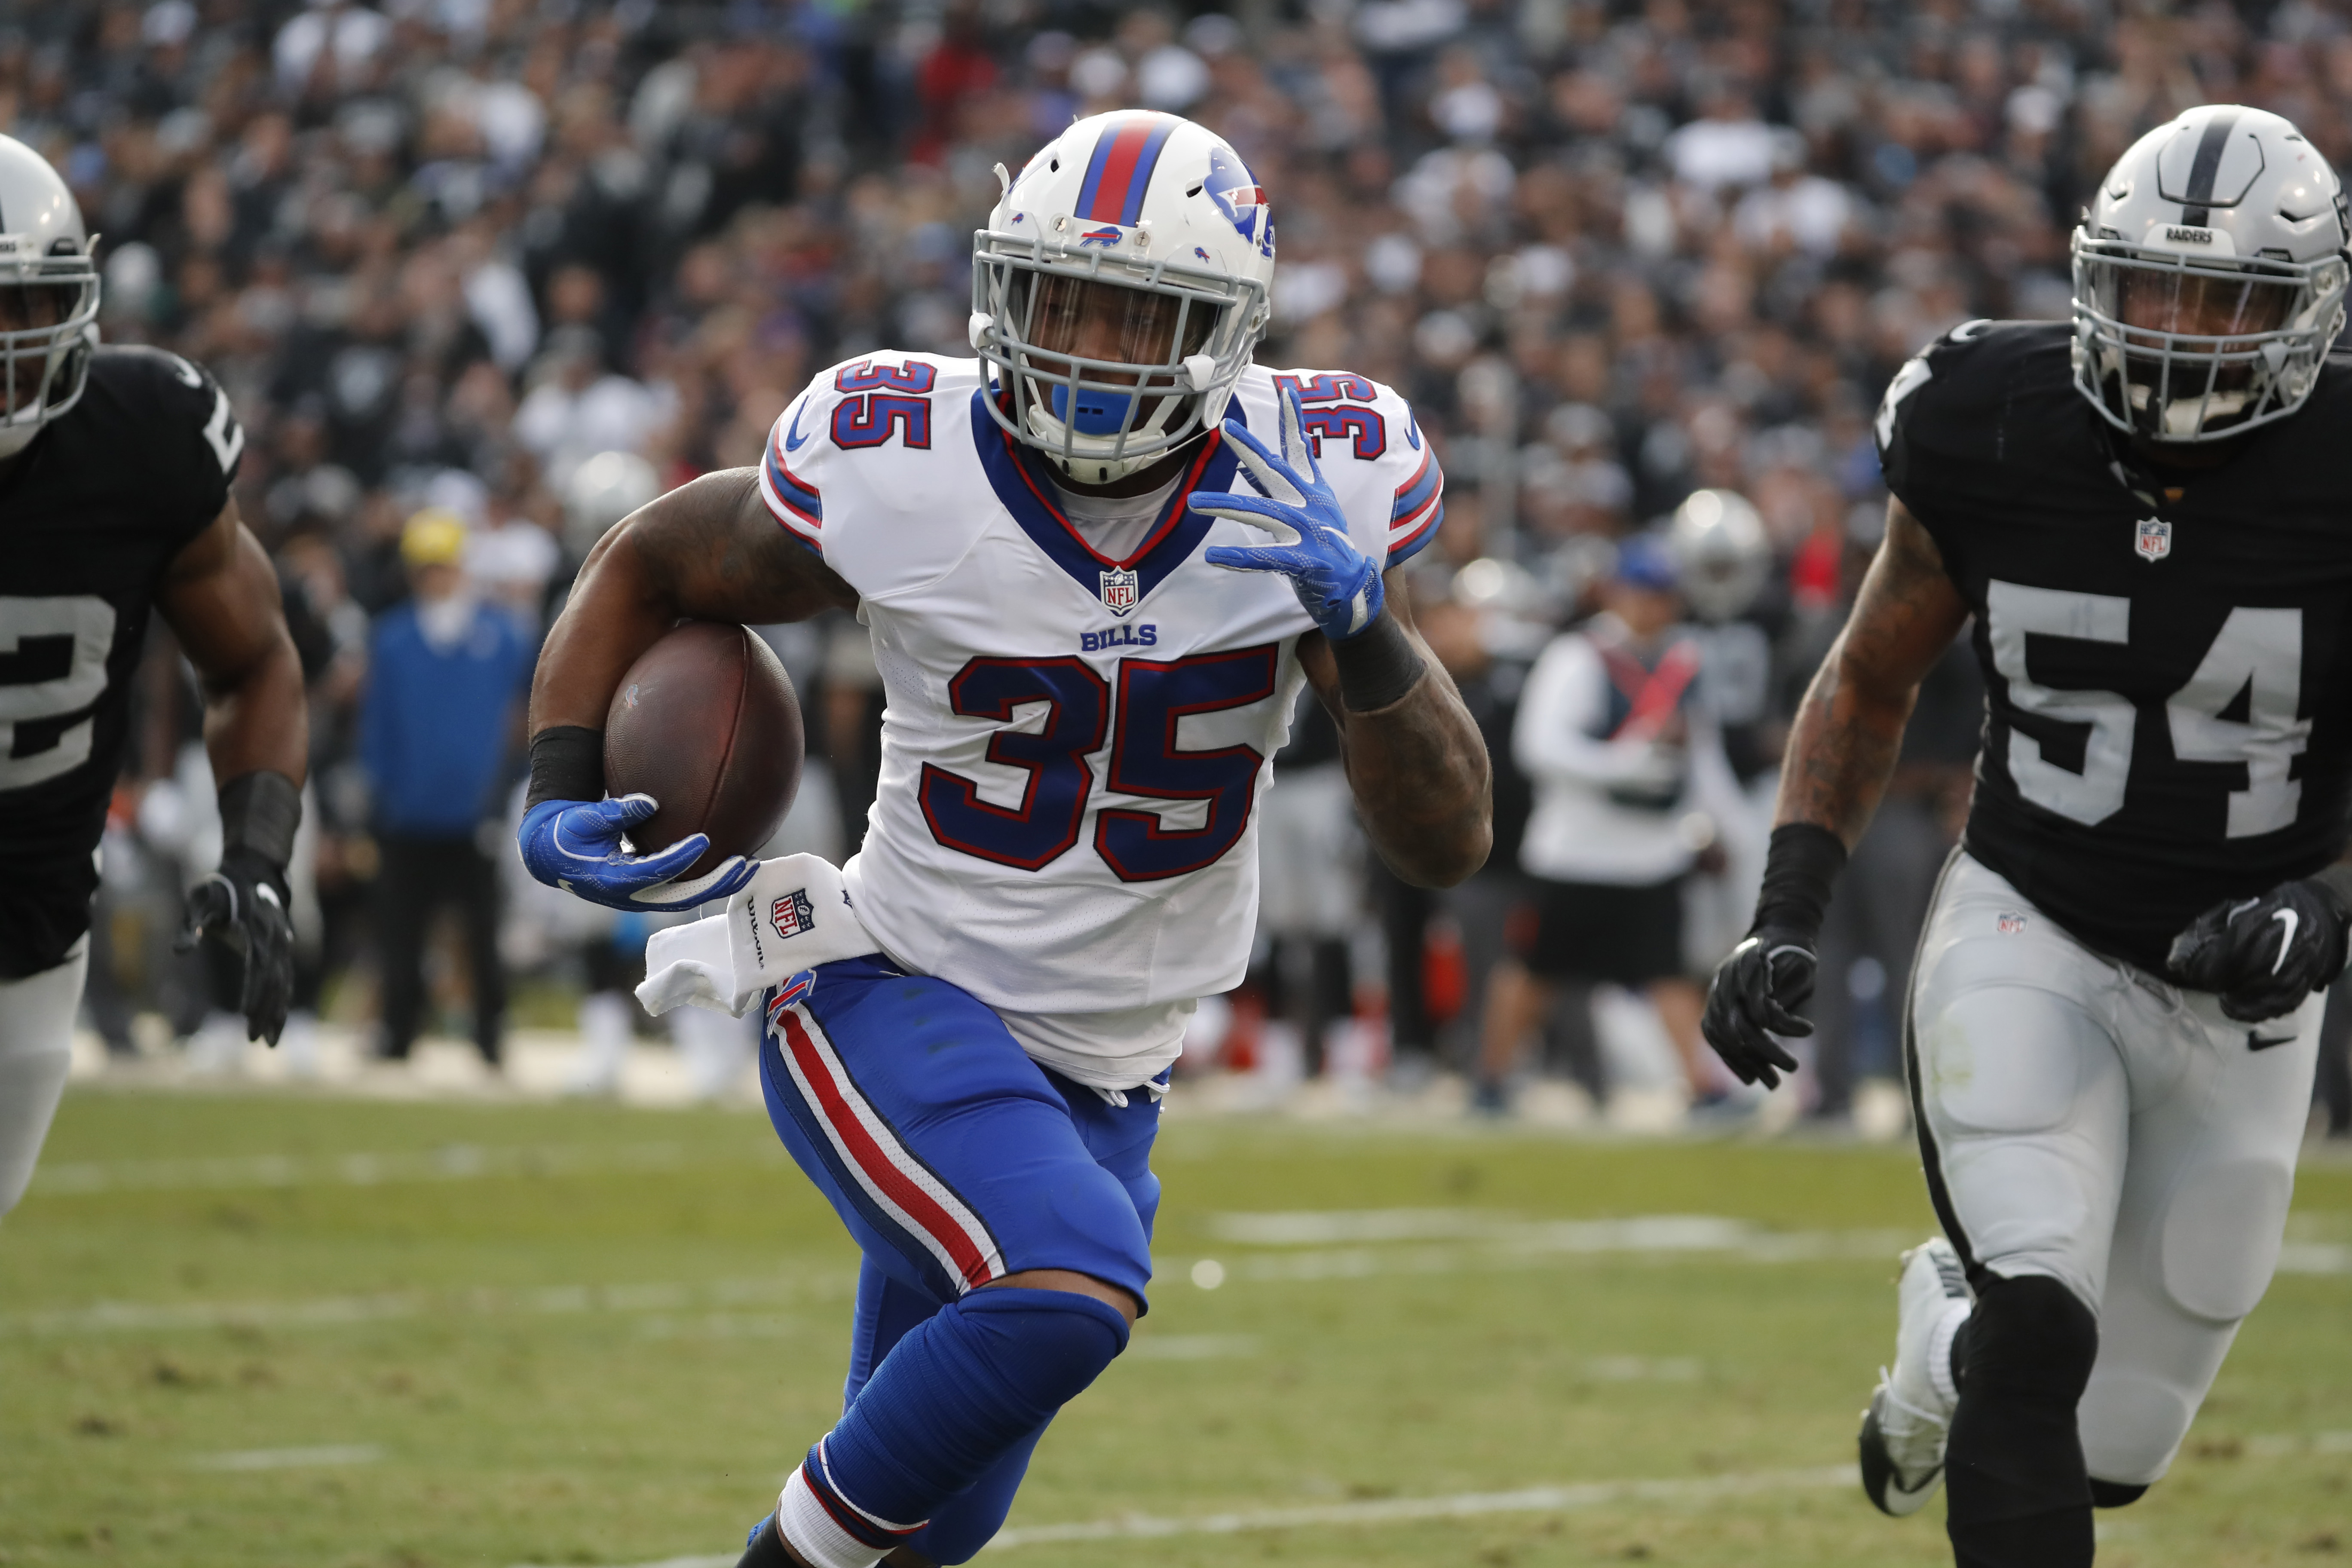 The loss of Mike Gillislee is one of the reasons Football Outsiders editor Aaron Schatz expects the Bills to be measurably worse in 2017. (Harry Scull Jr./Buffalo News)